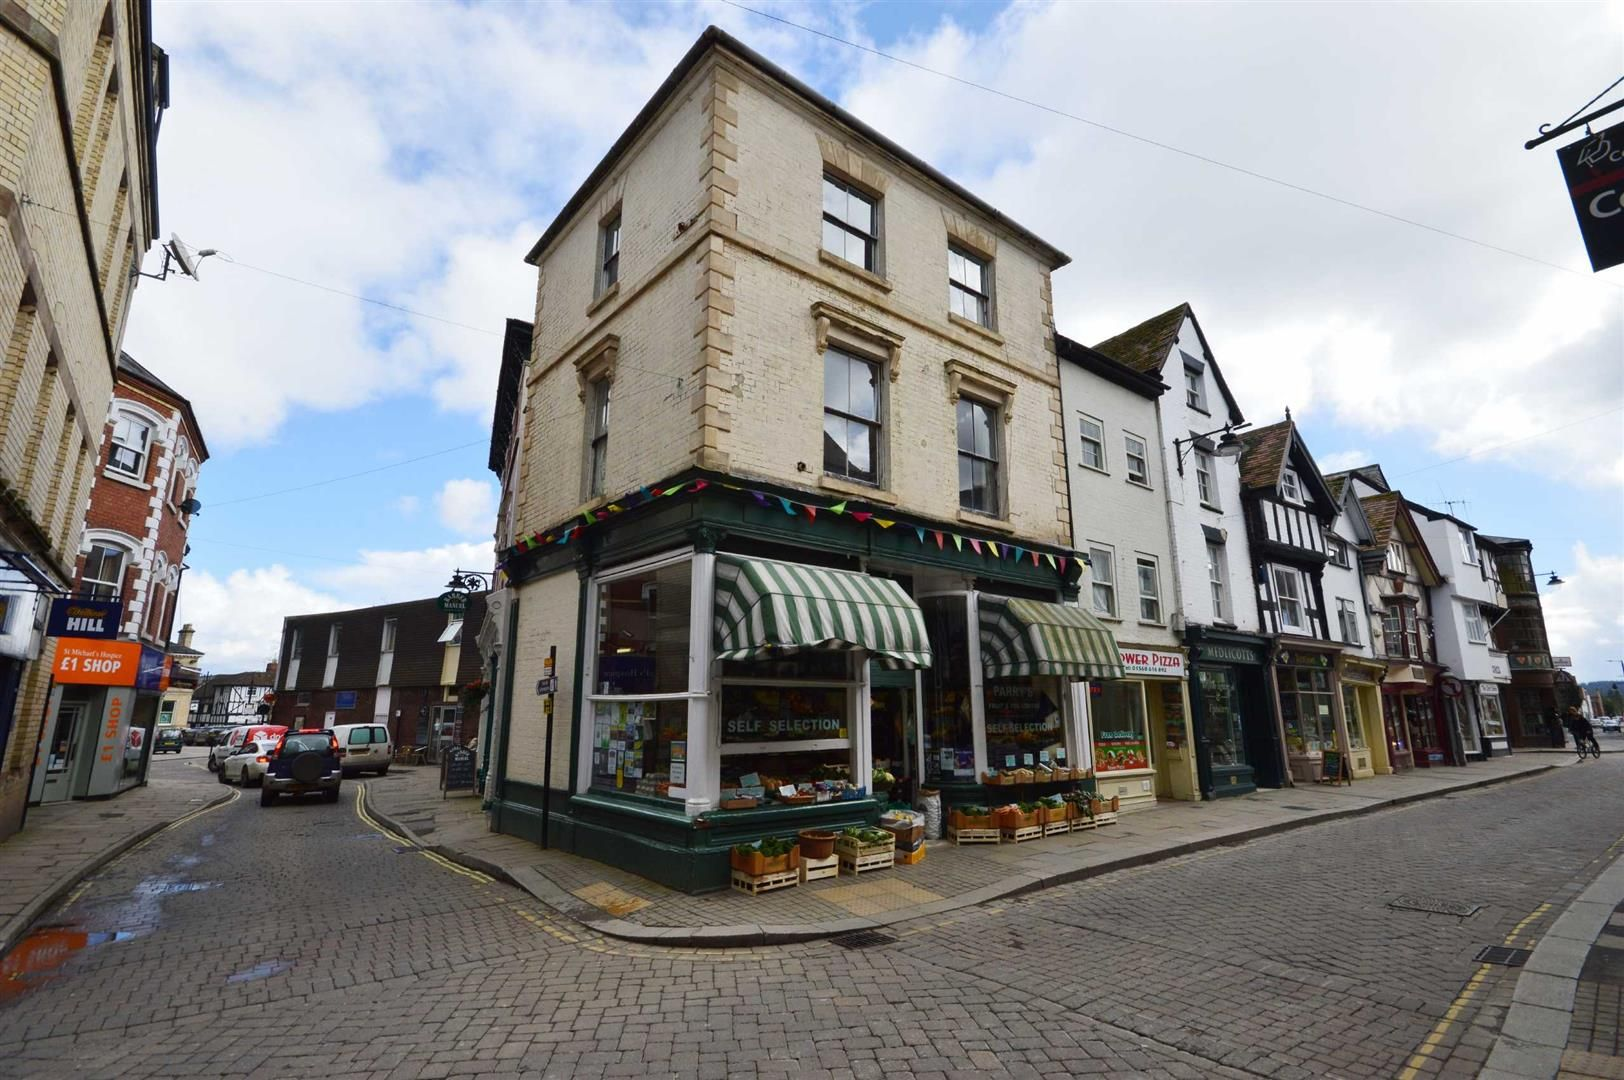 3 bed  for sale in Leominster  - Property Image 1